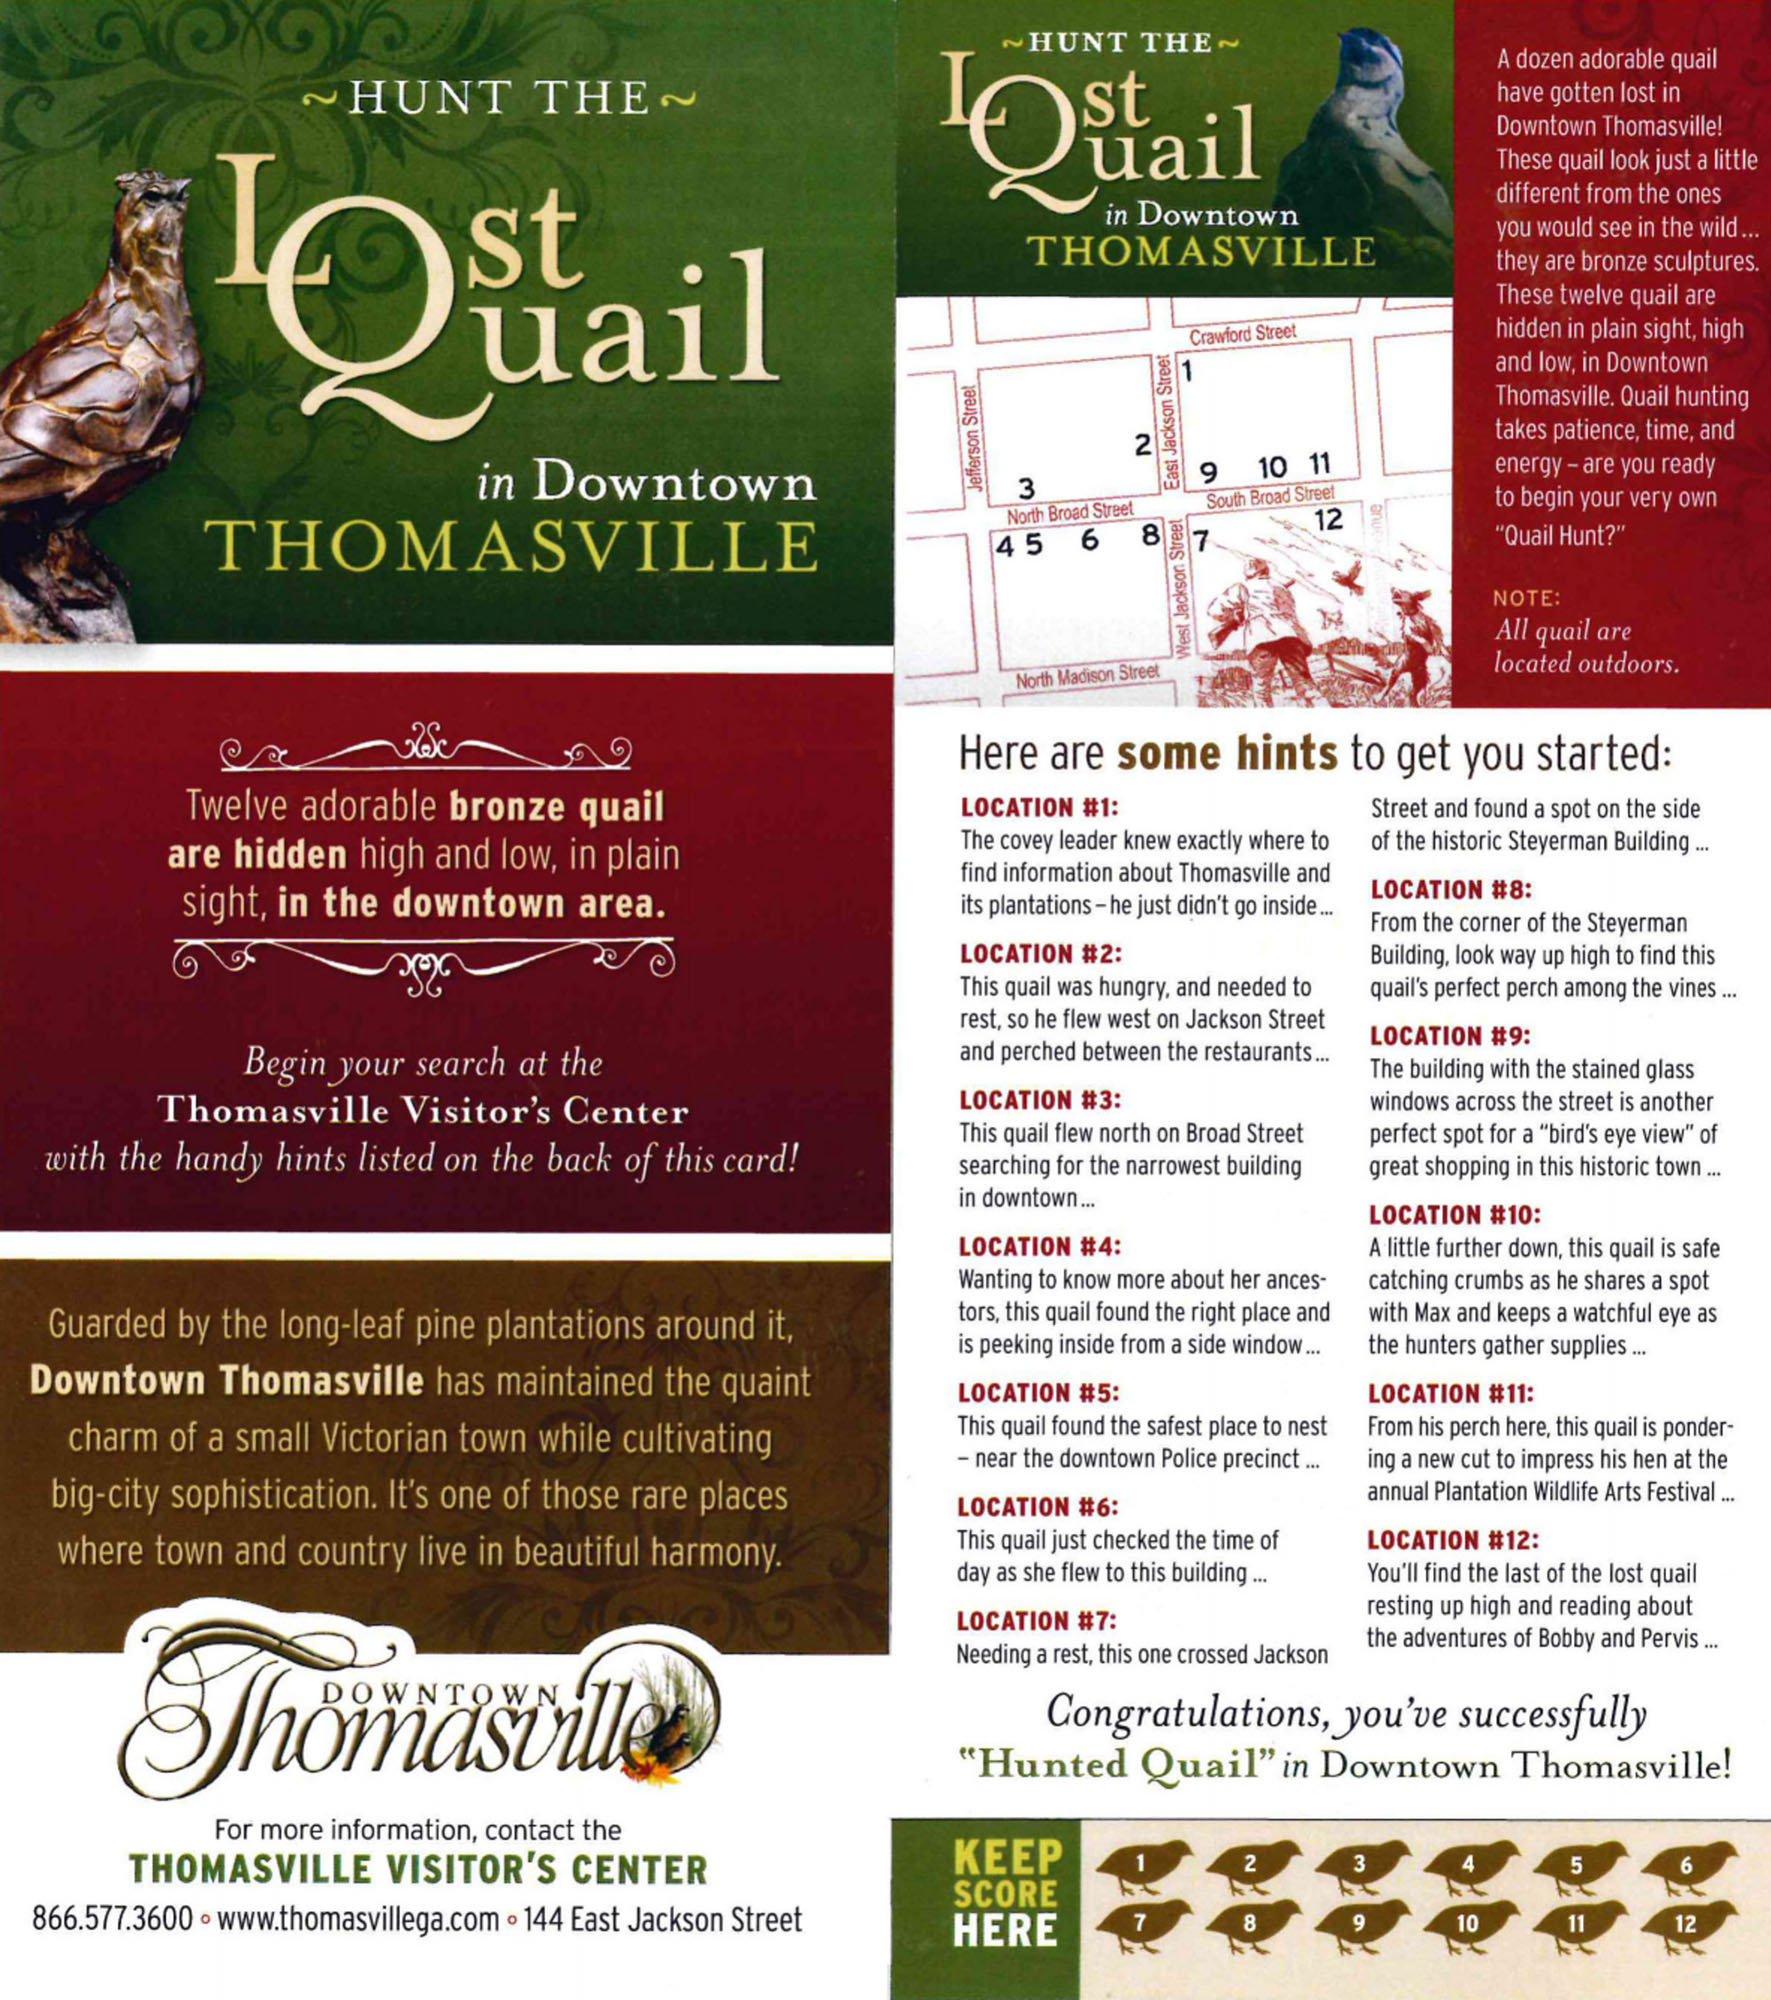 Hunt the Lost Quail in Downtown Thomasville